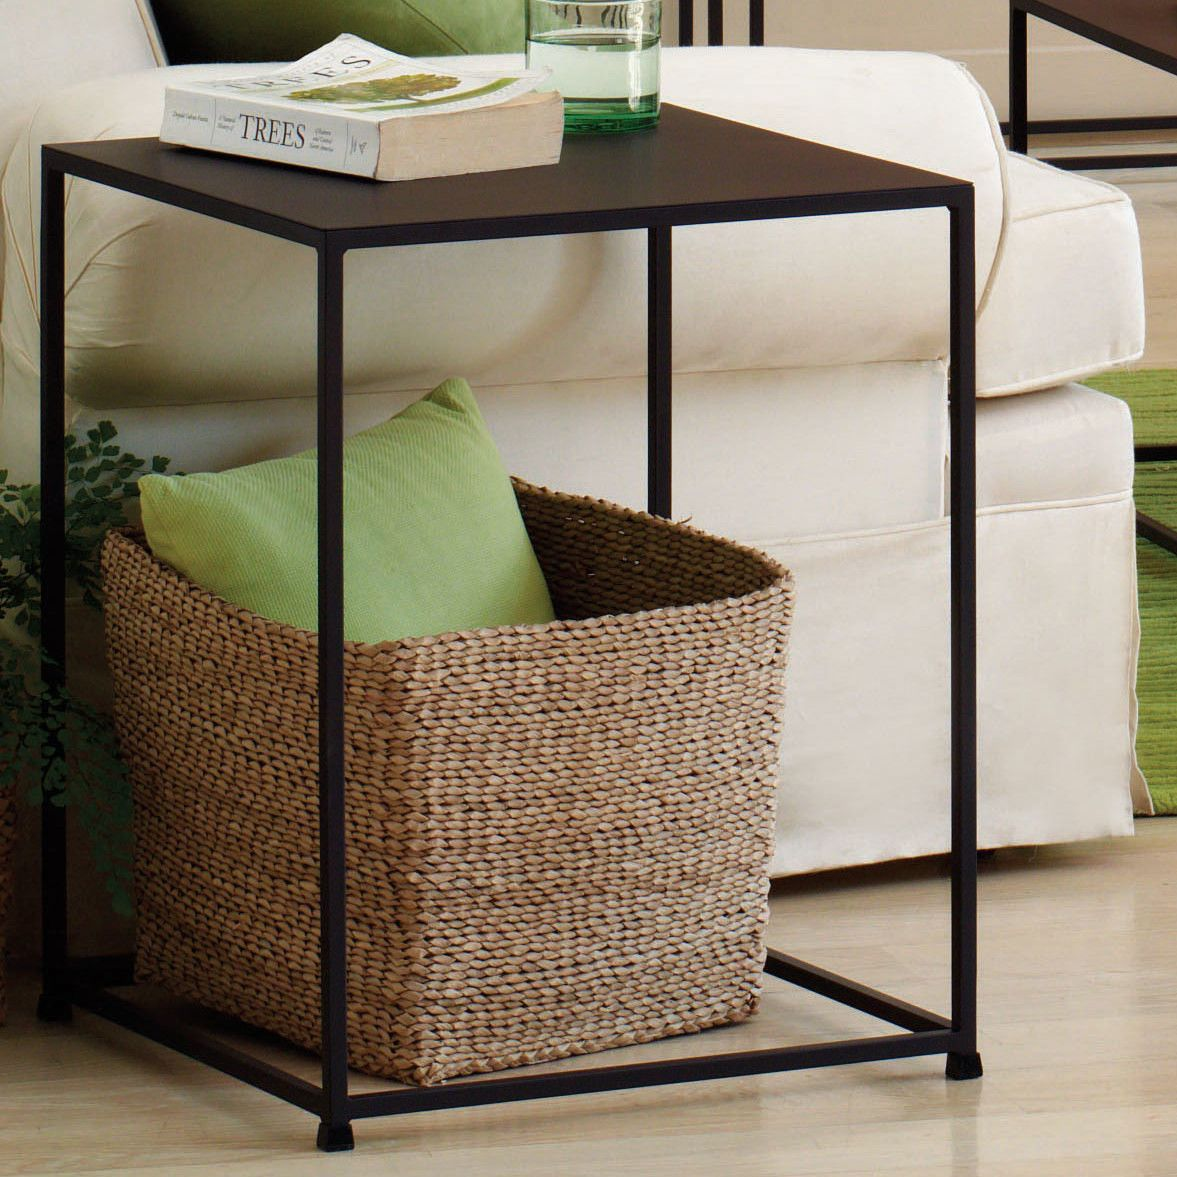 Best I Love The Basket Under The Table For Extra Storage With 400 x 300